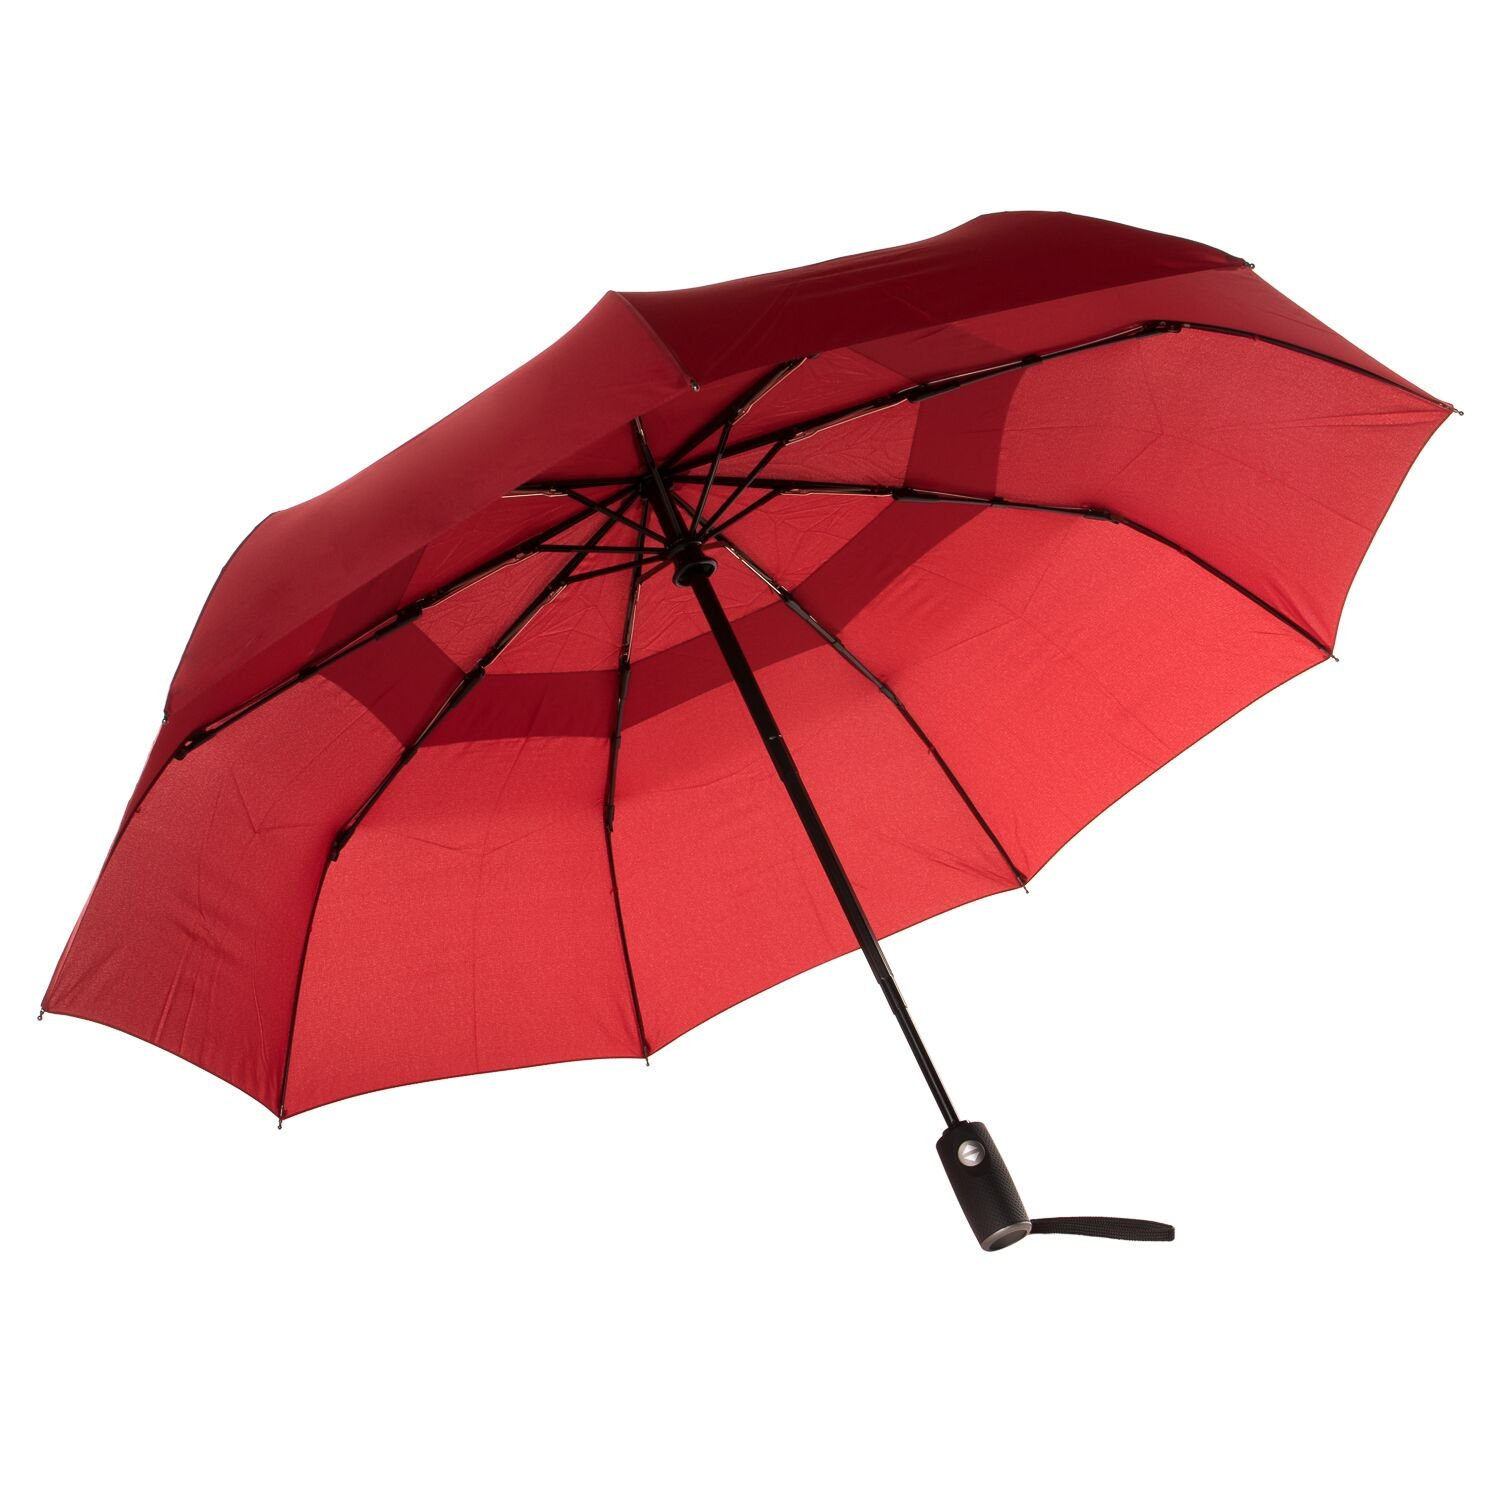 Home Treats Windproof Travel Umbrella